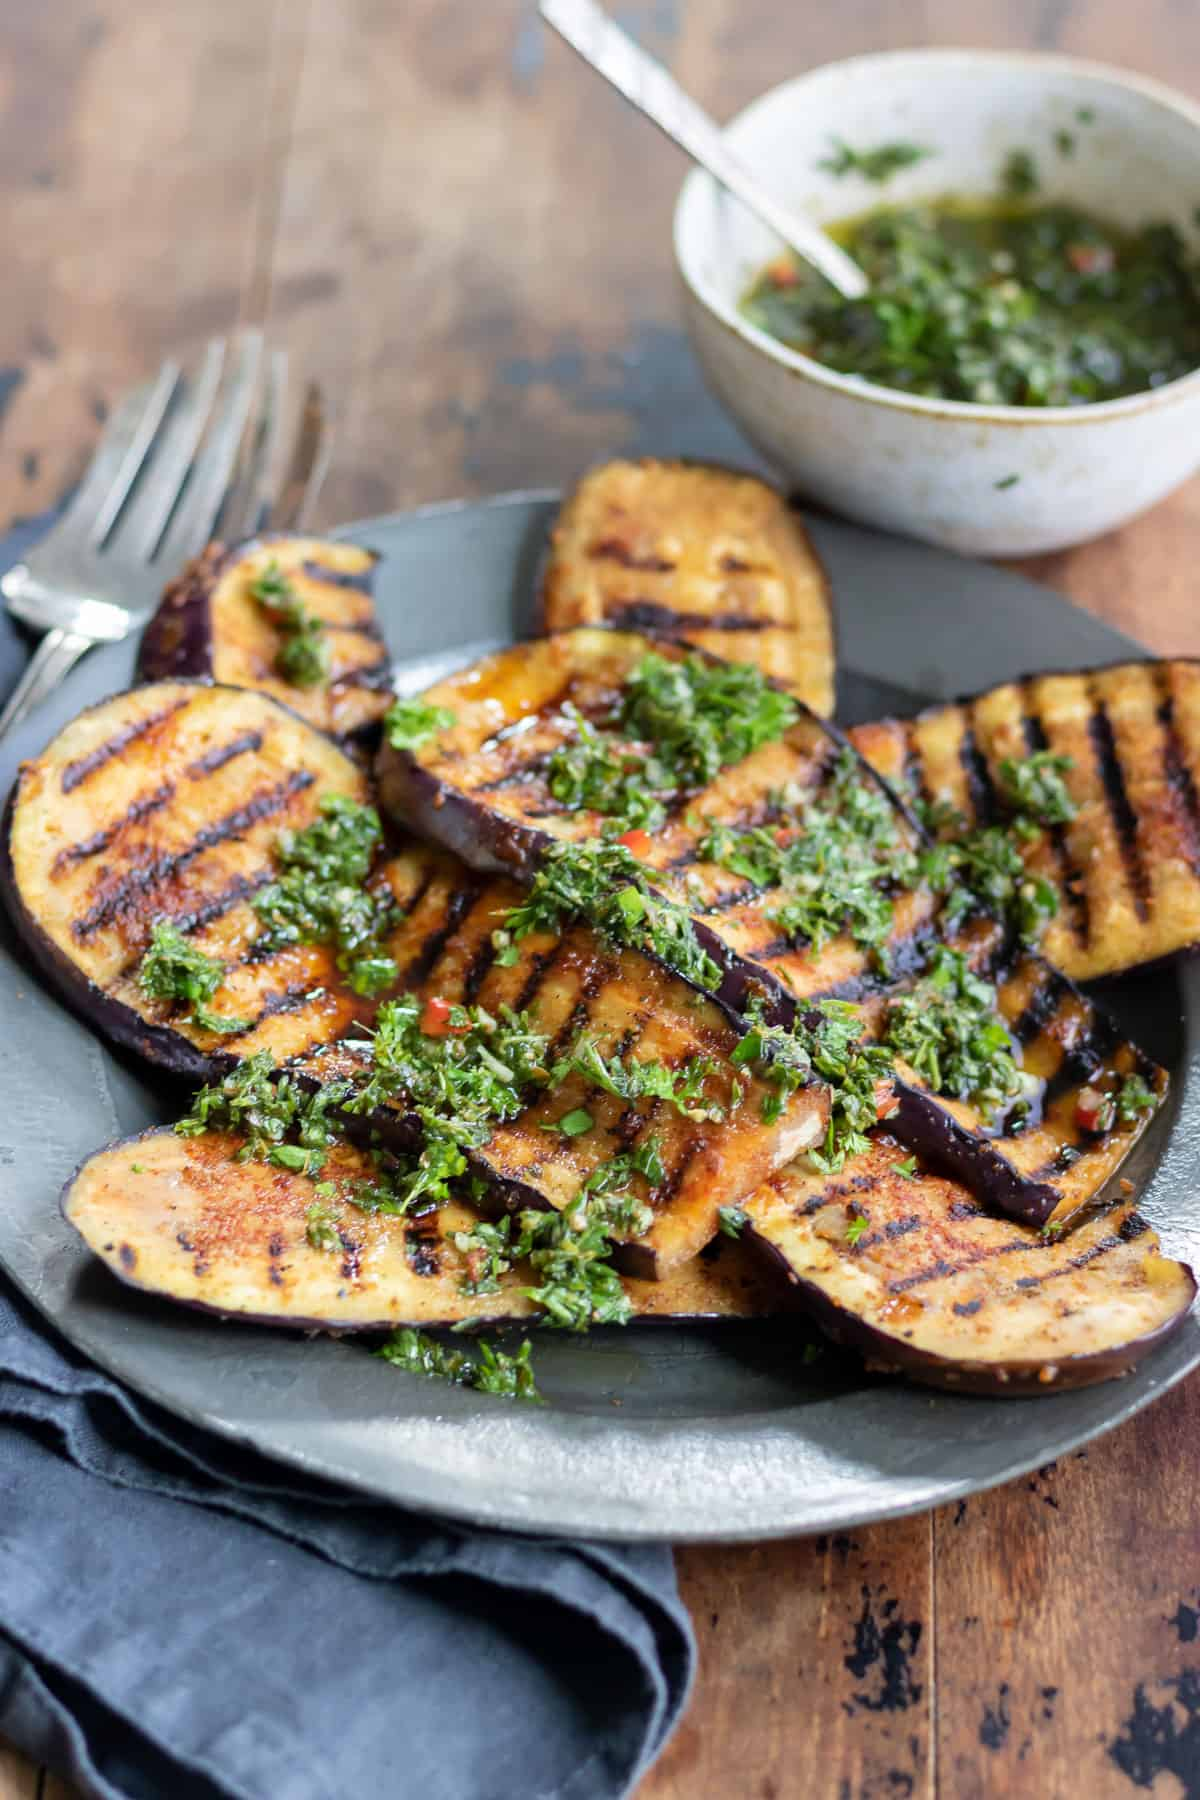 Serving plate of eggplant.